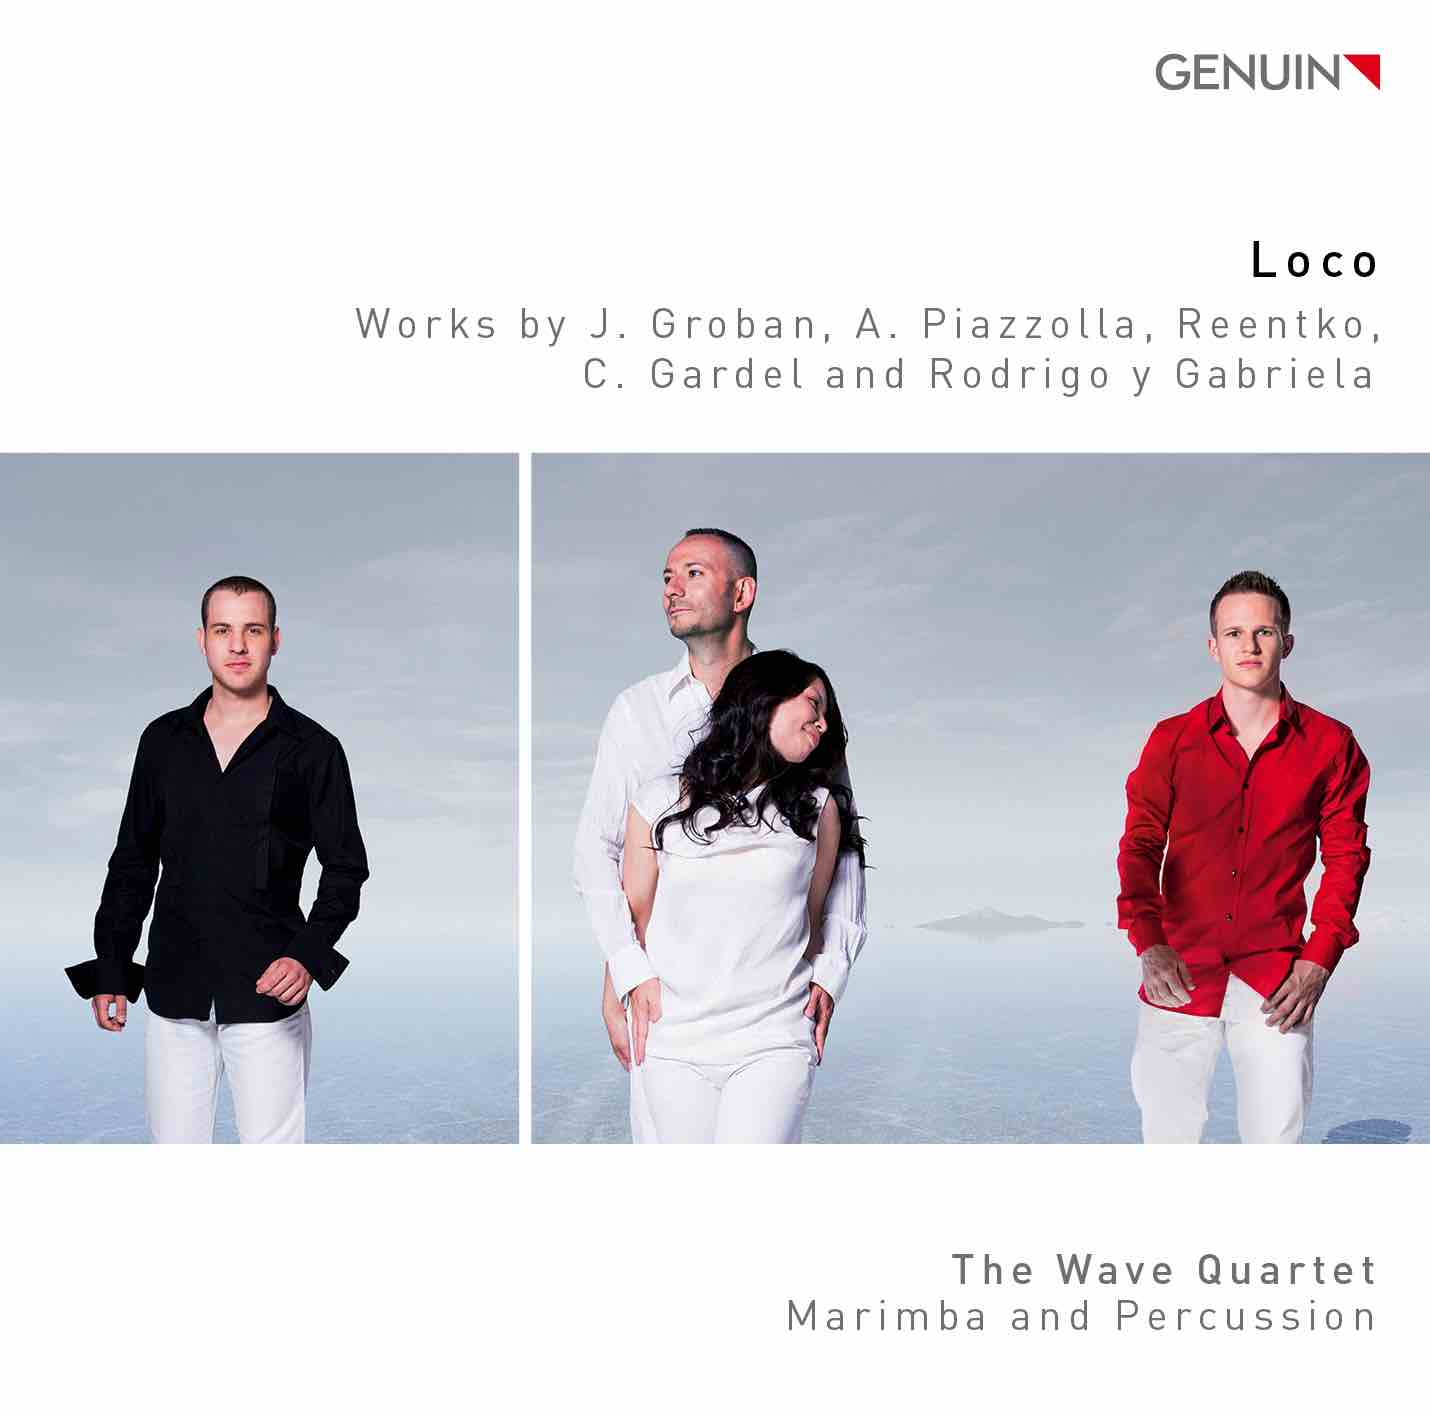 【CD/ネコポス発送】The Wave Quartet/Loco